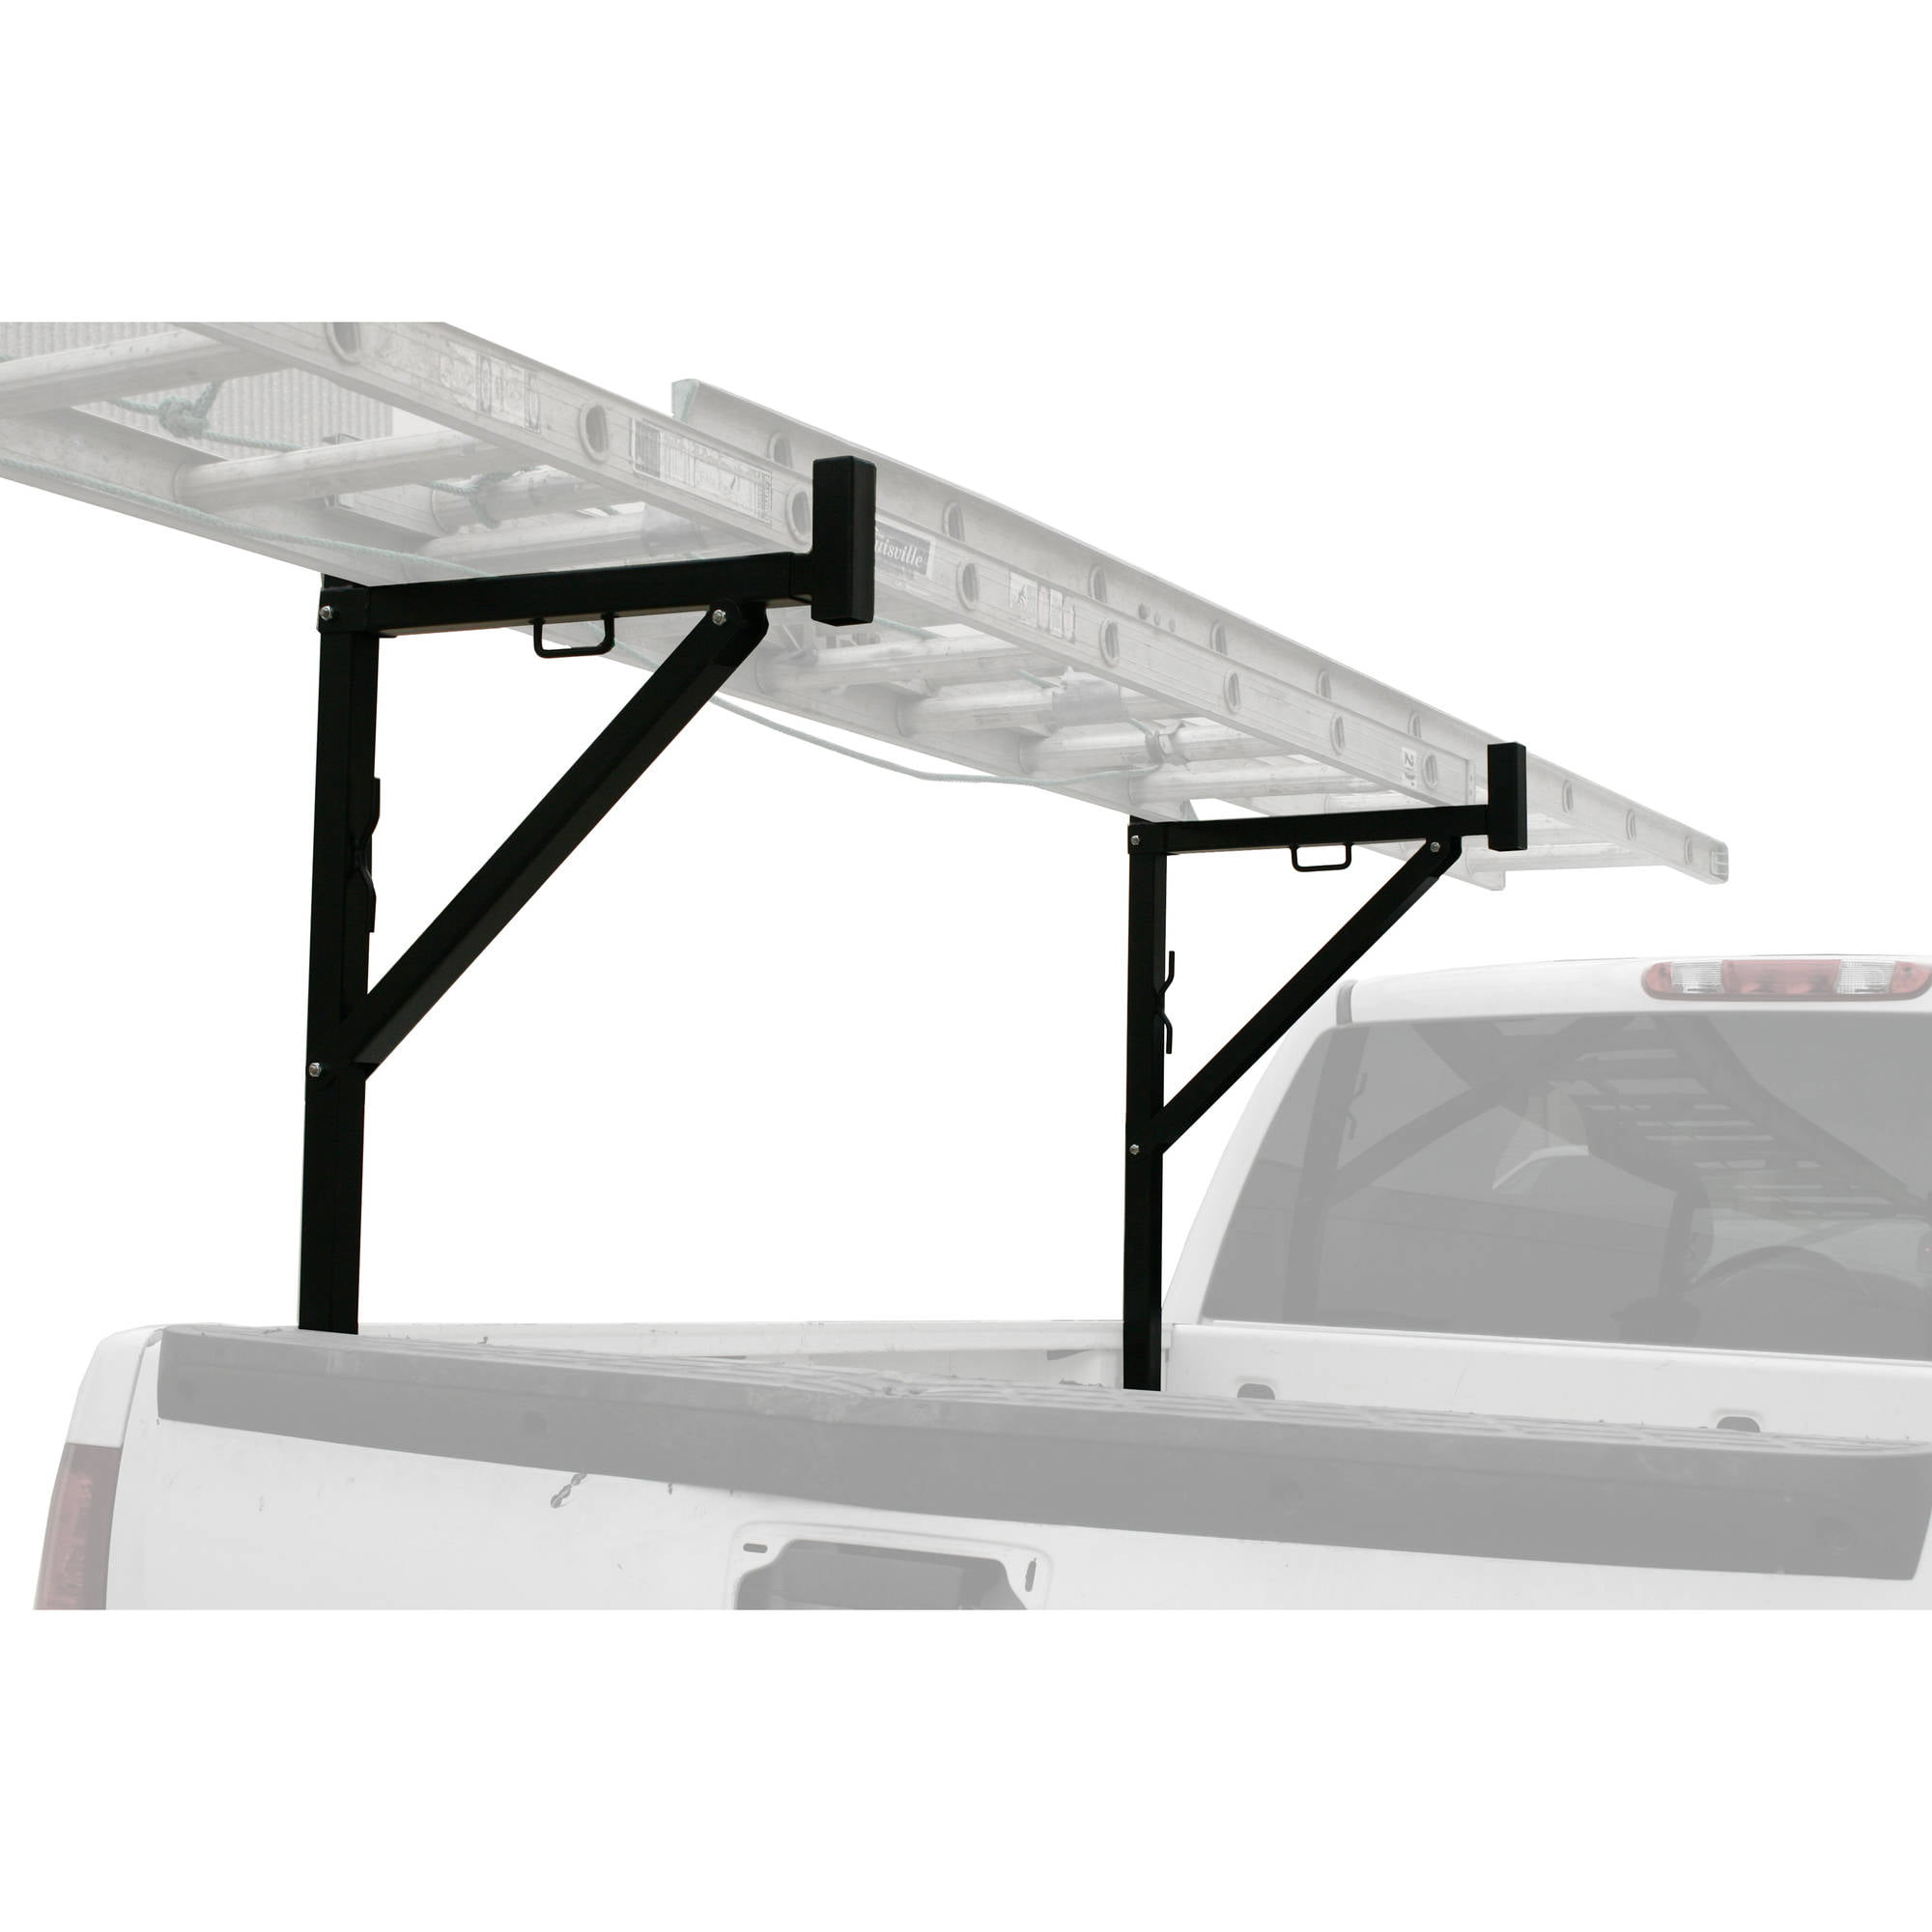 setups community t ladder rack cleaning resource window vehicle truck mb image cheap